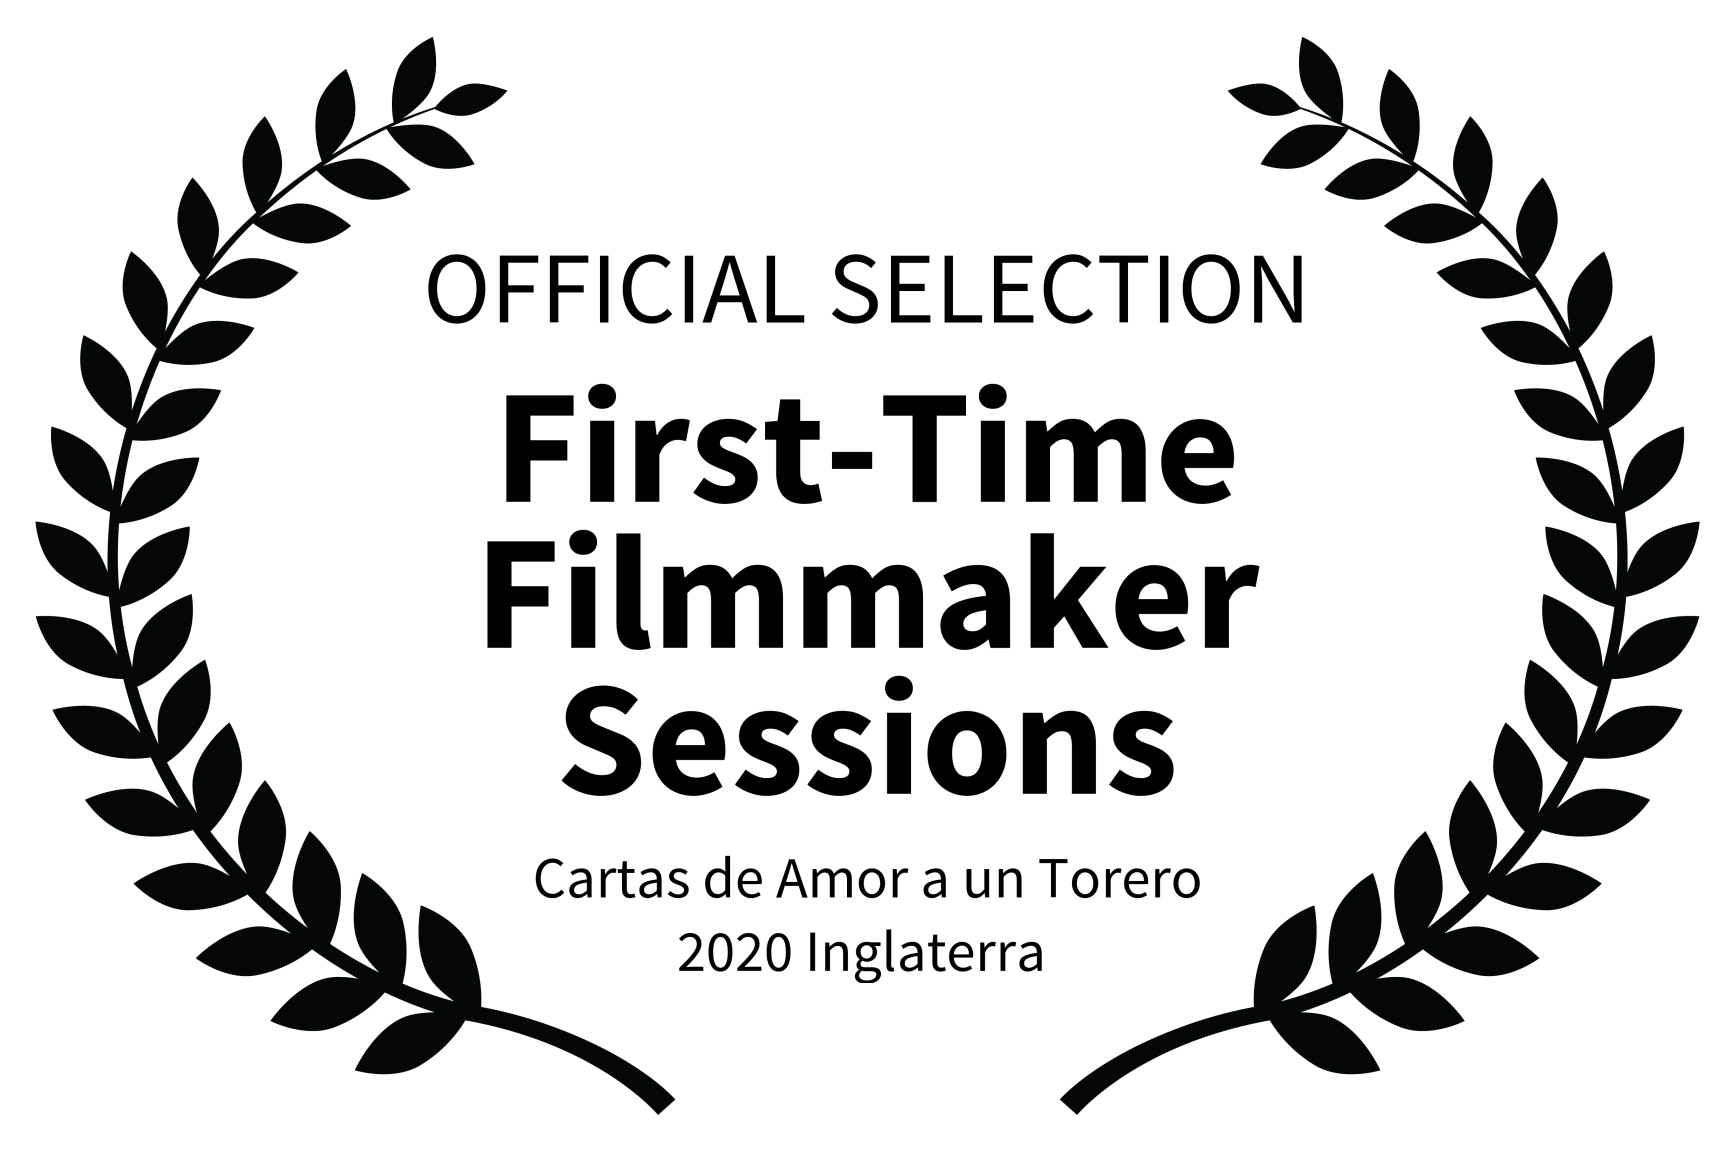 OFFICIAL SELECTION - First-Time Filmmake